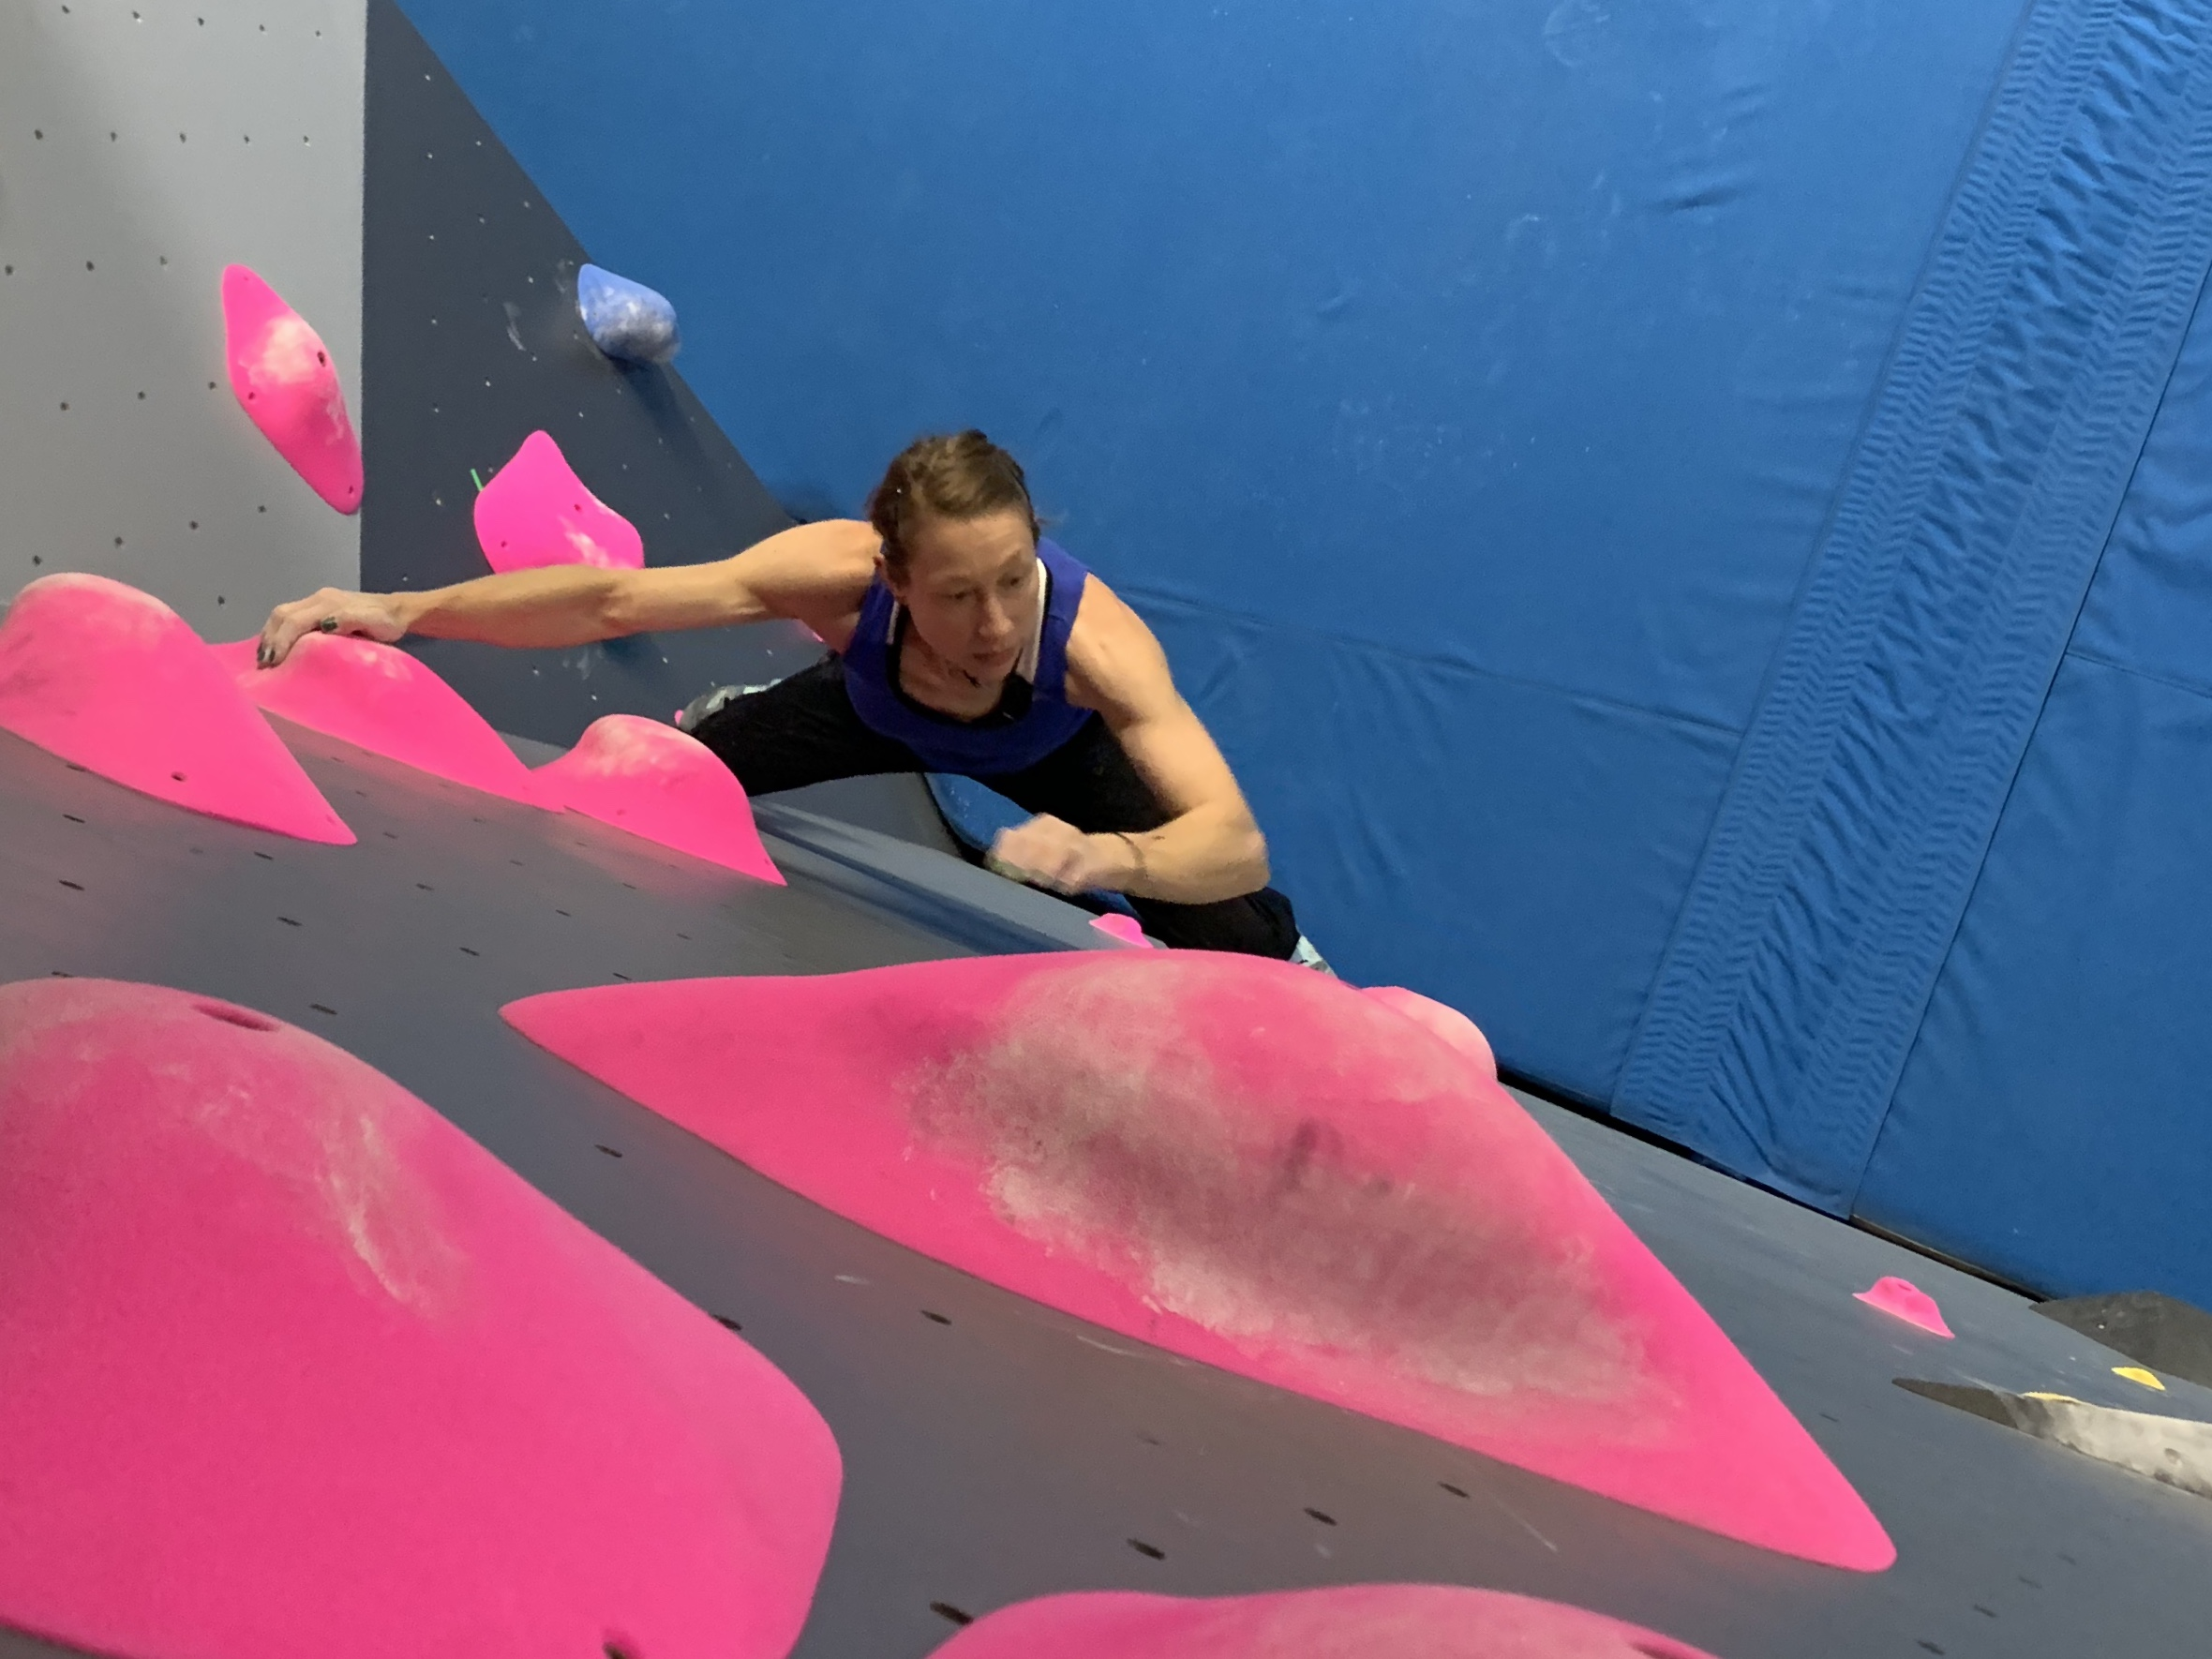 Woman with muscular shoulders climbing indoors